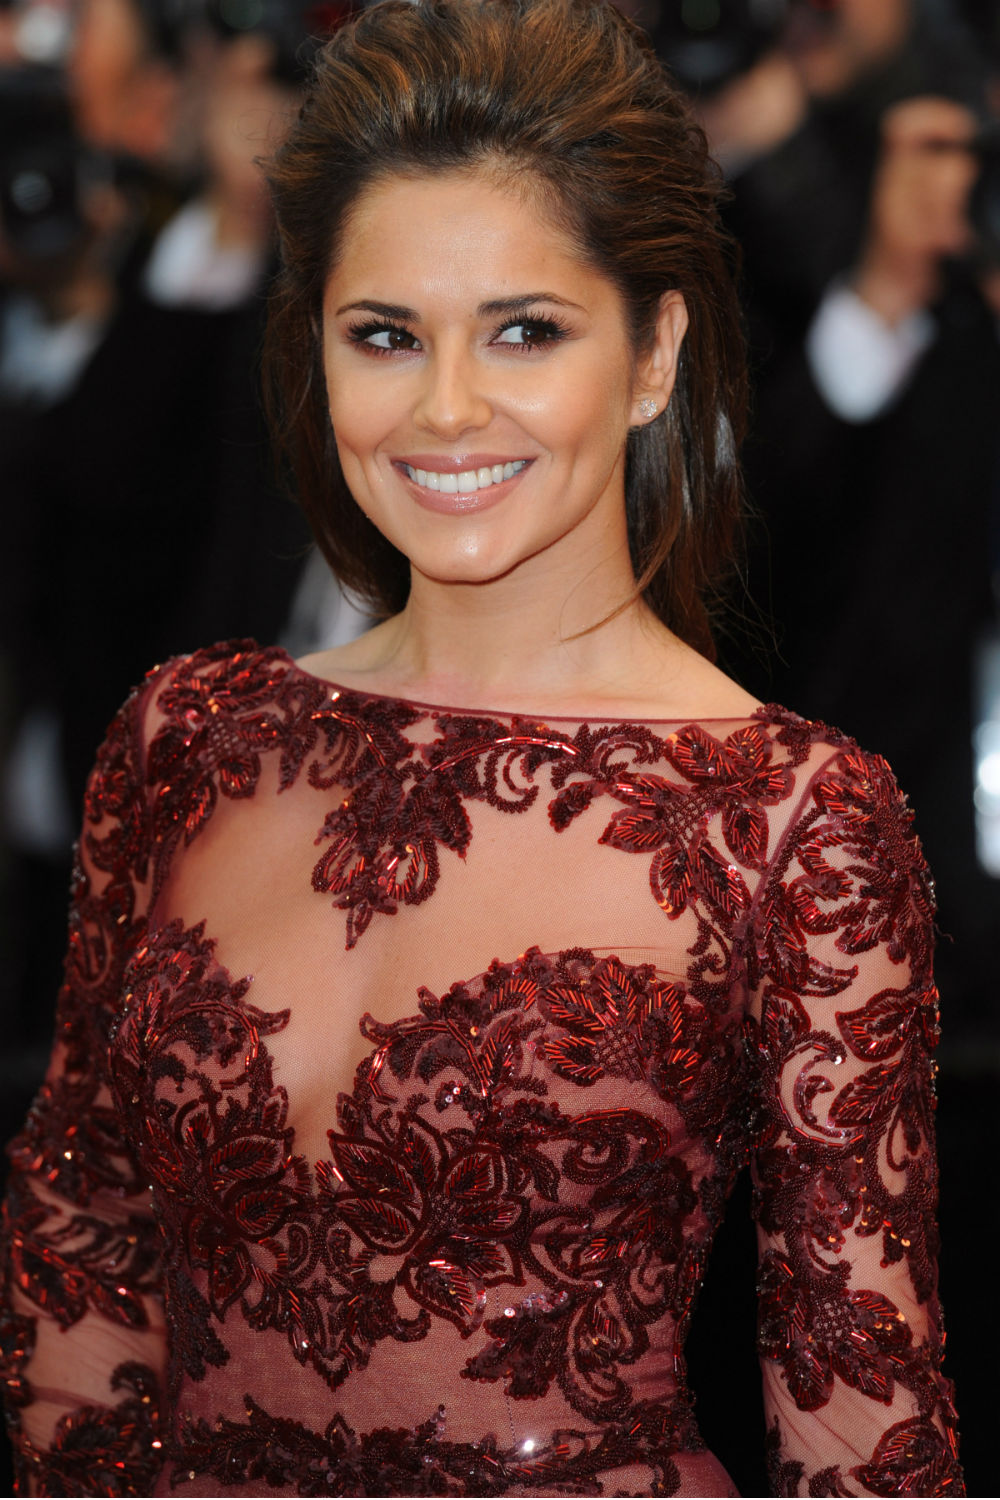 Cheryl Cole Confirms X Factor Return With Cheeky Instagram Pic Cheryl Cole